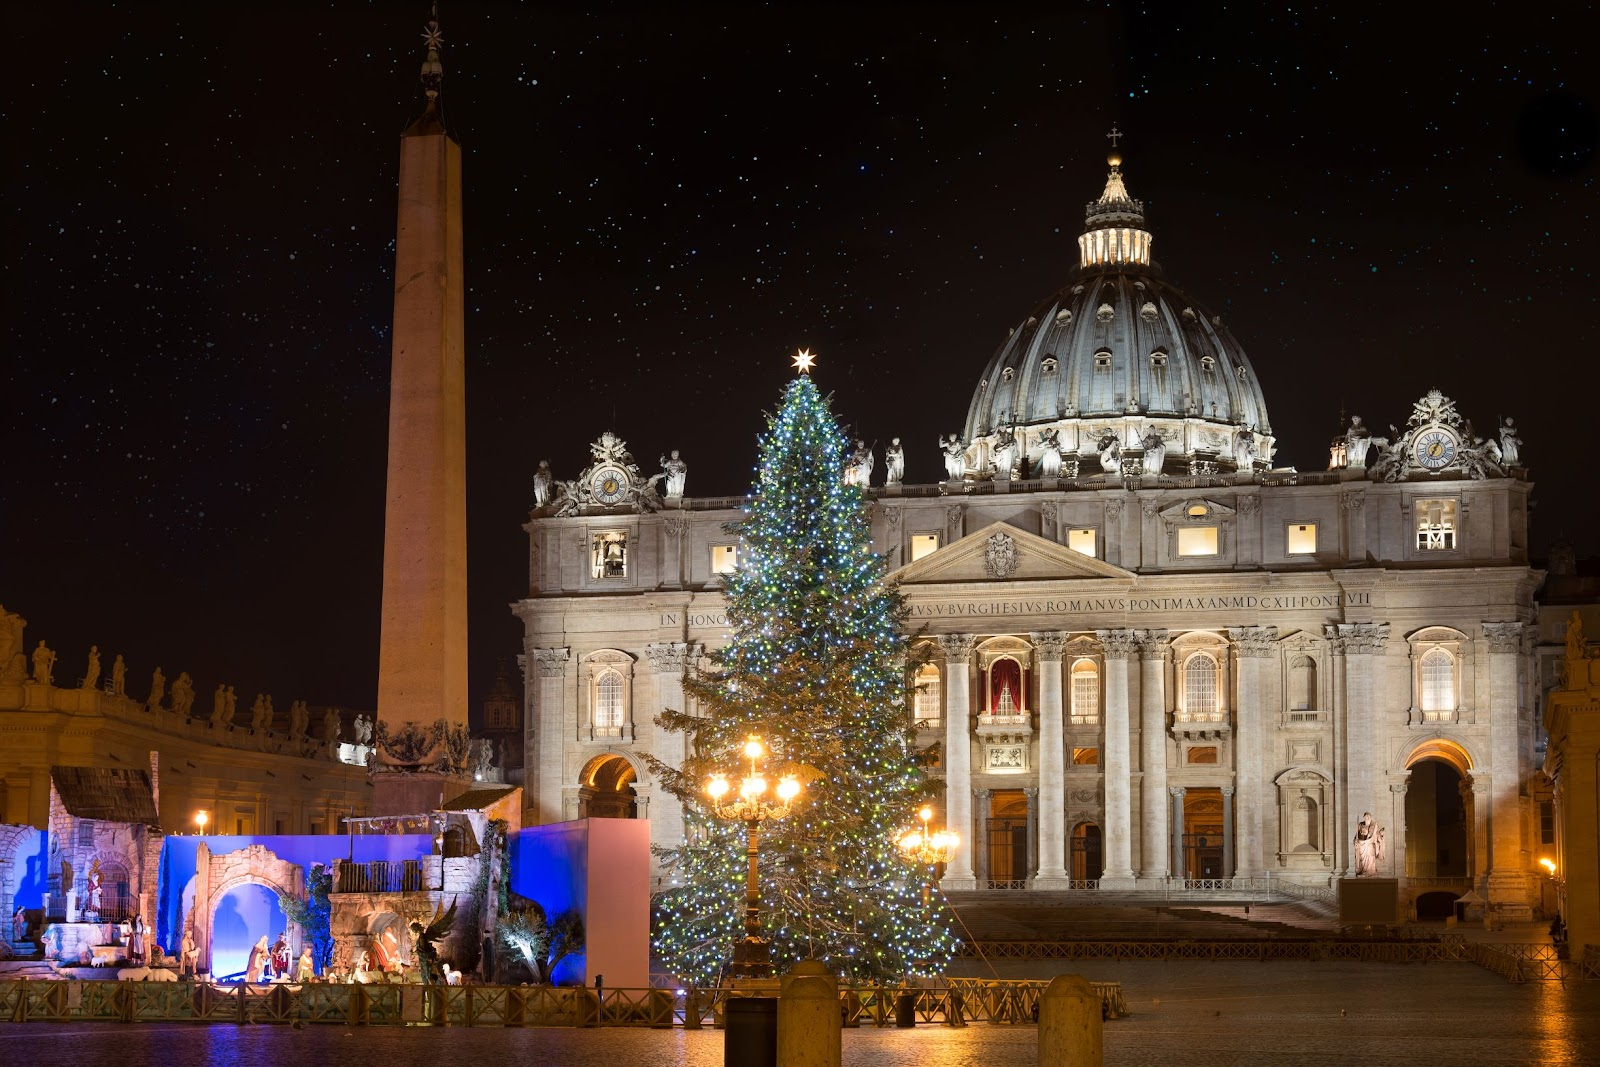 St. Peter's Square Christmas tree in Vatican City